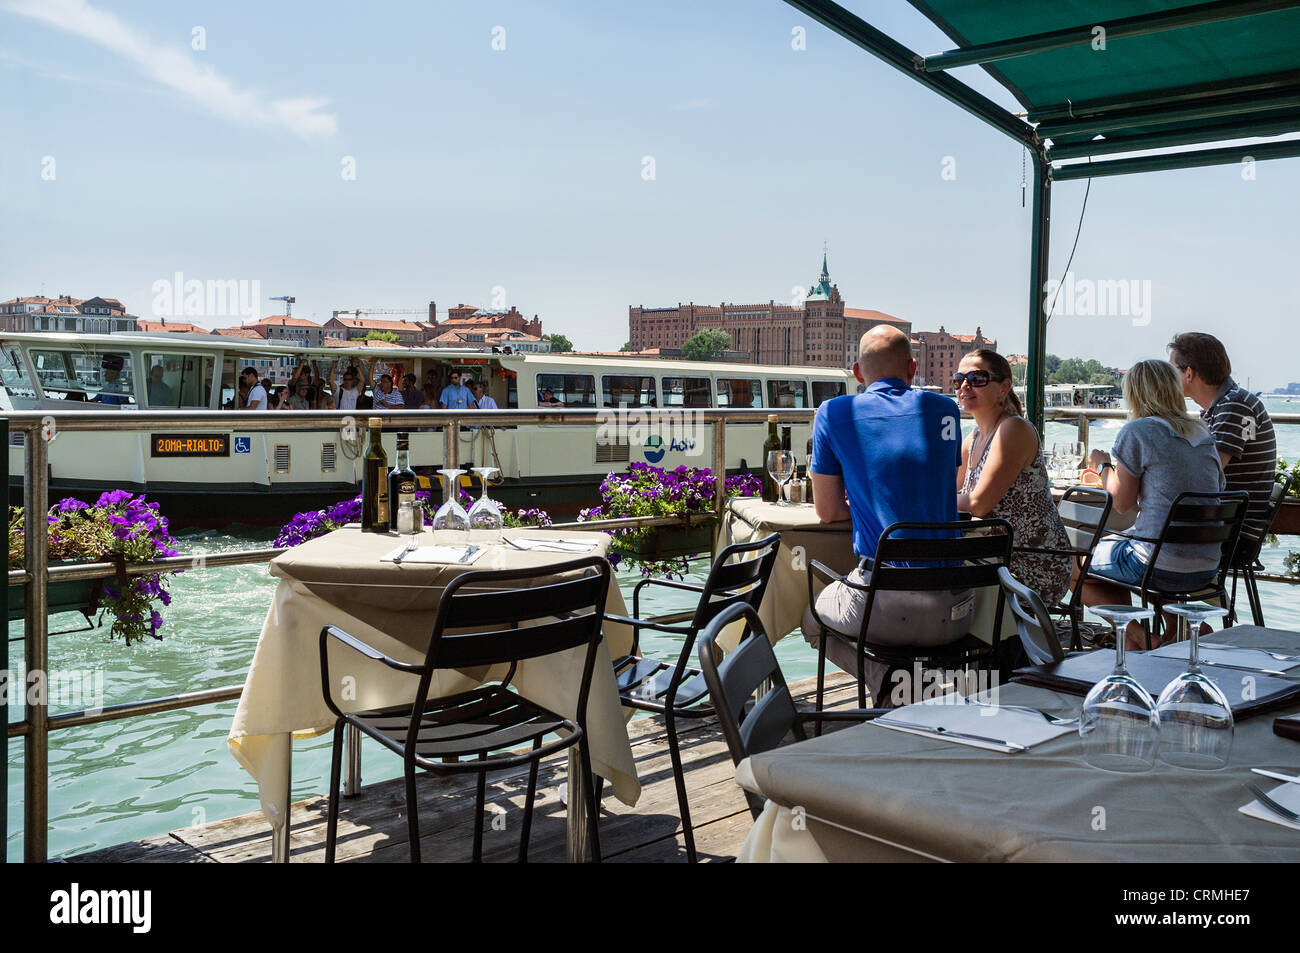 A valporetto passing diners eating out at a canal side restaurant in Dorsoduro Venice. - Stock Image